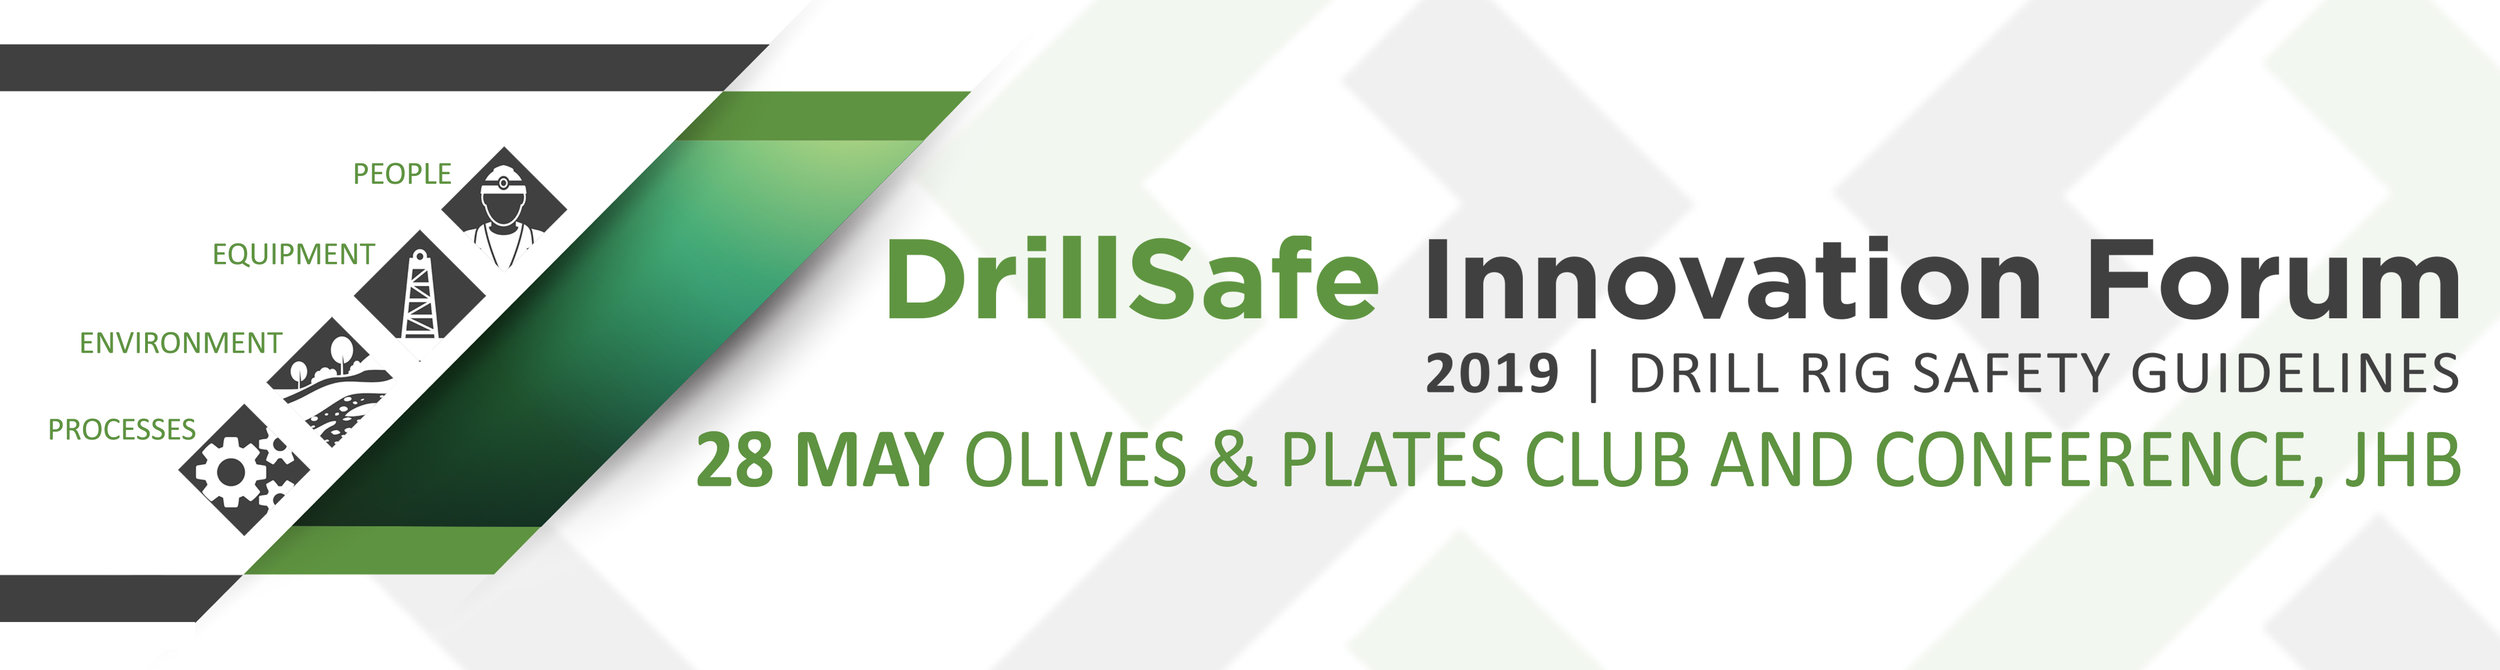 Drill Rig Safety Guidelines Forum Information — DrillSafe